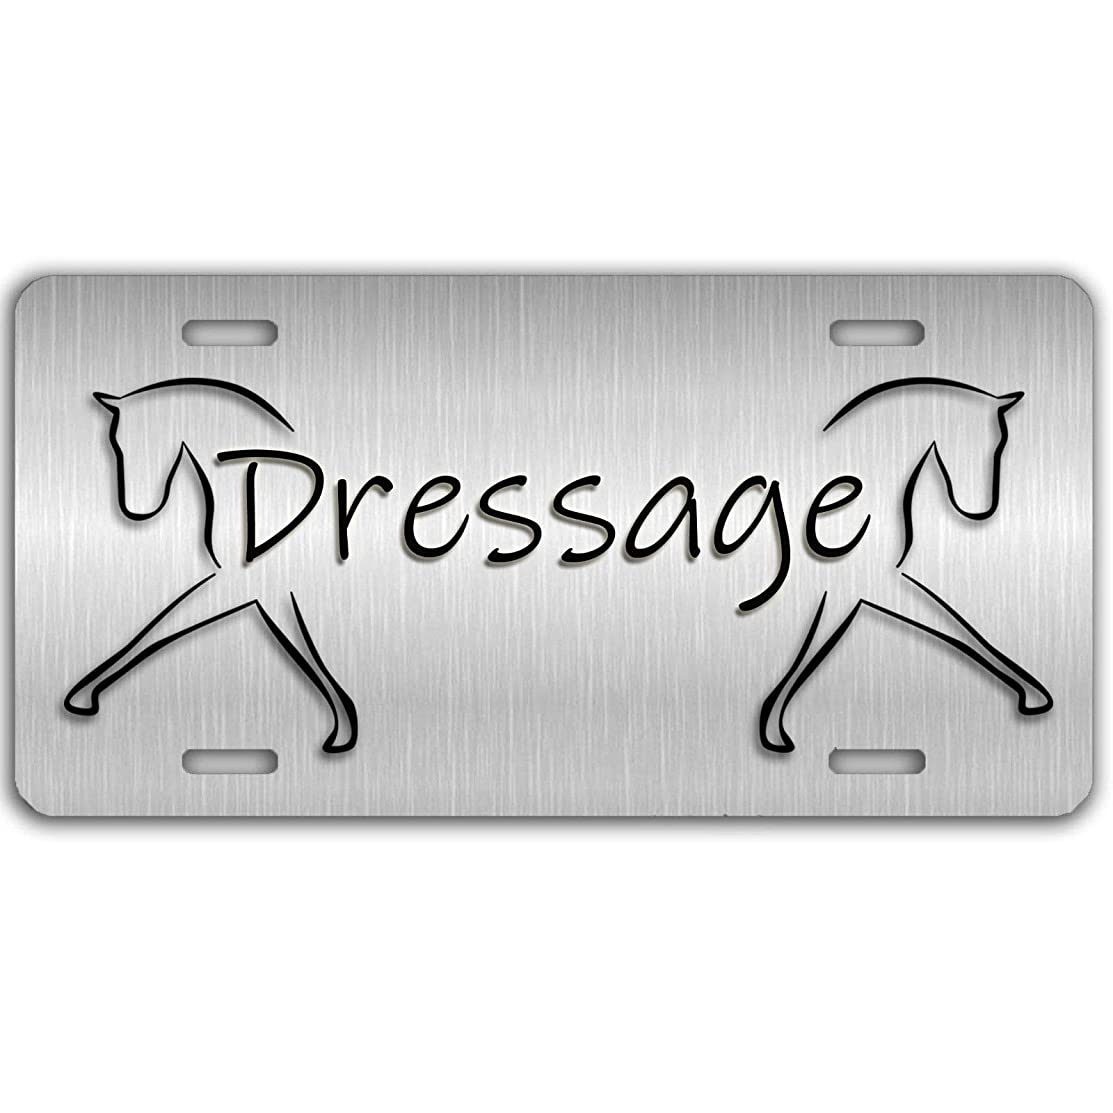 Personalized Aluminum License Plate Tag for Women/Men, Metal Sign Decor for US Vehicles - 12